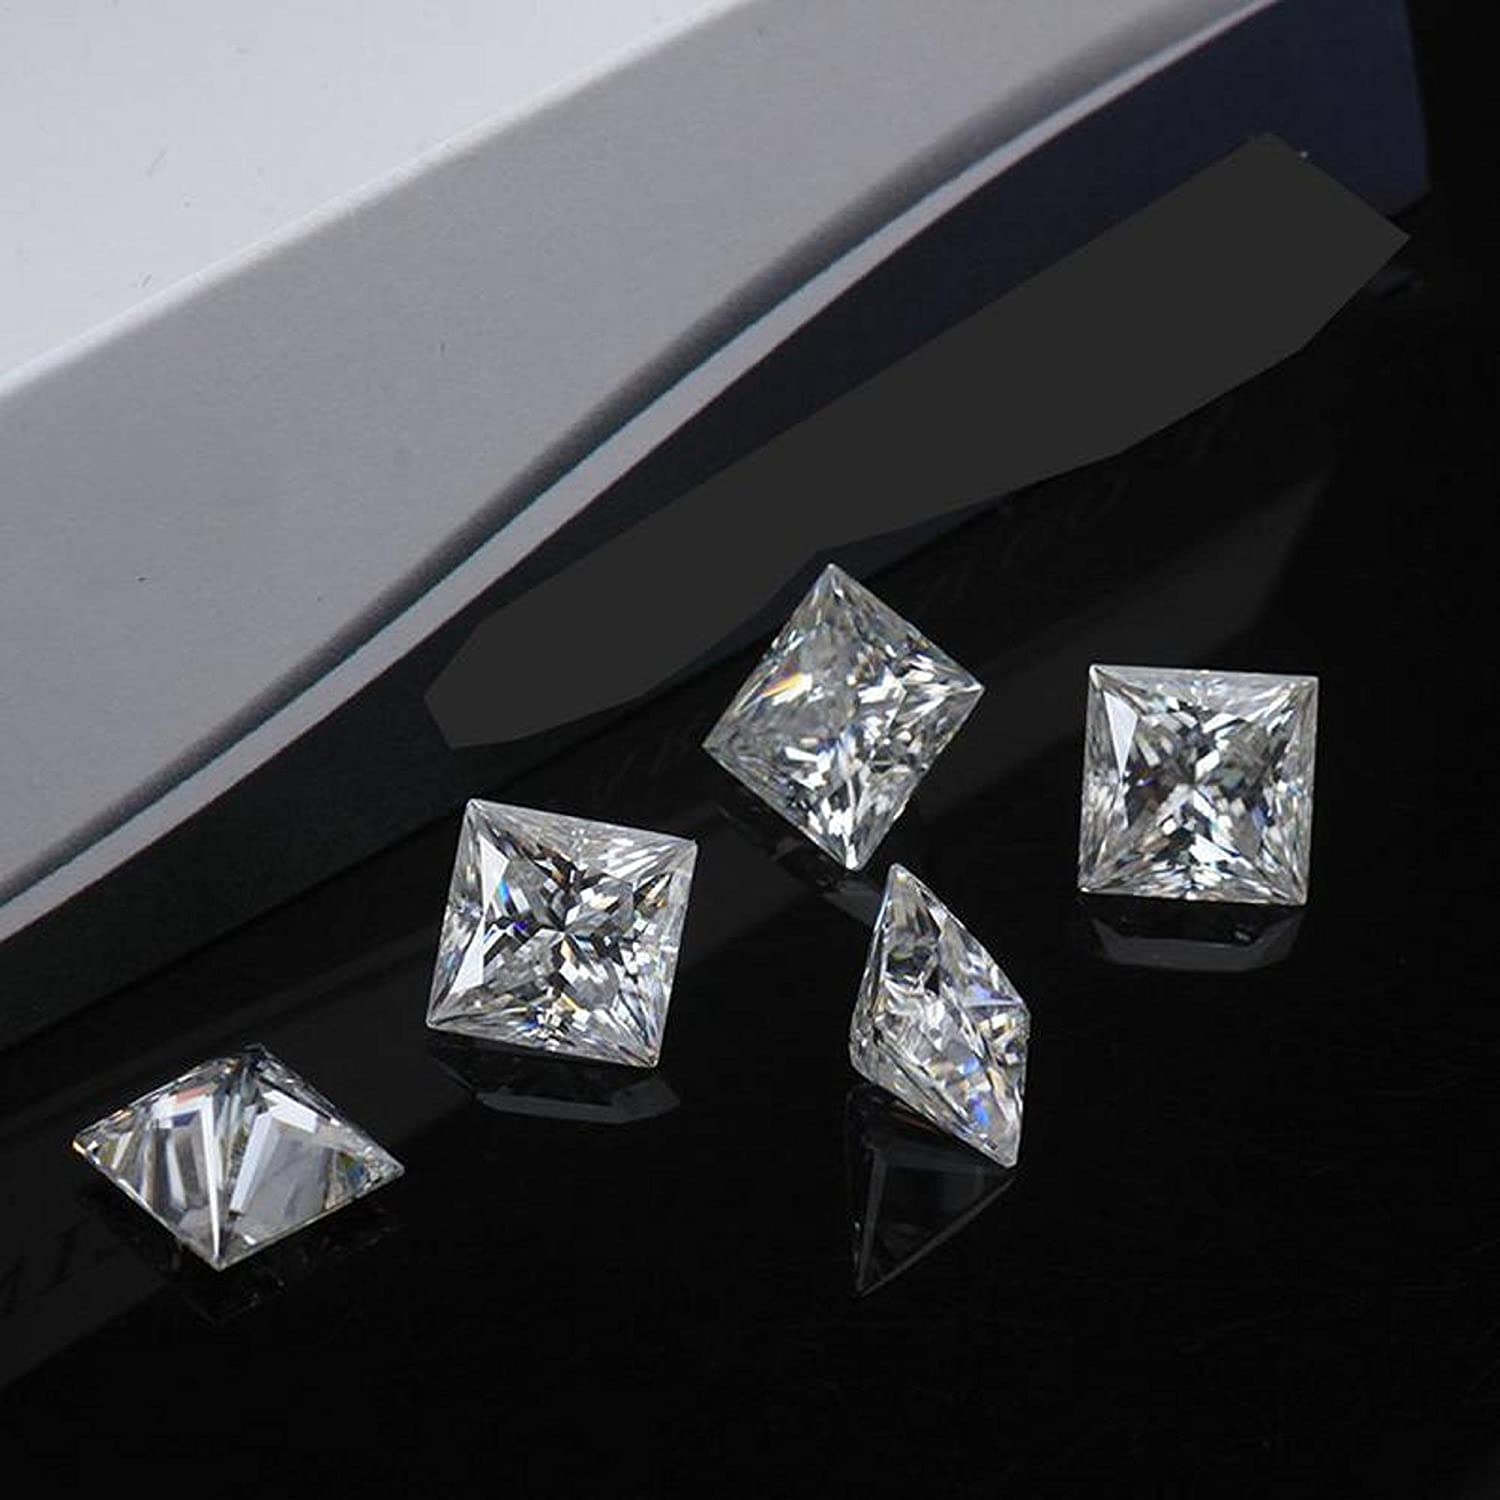 8.25MM VVS1 Clarity Princess Cut Brilliant Gemstone for Making Vintege Ring Earrings Jewelry Necklaces Real Colorless Diamond Pendant JEWELERYIUM Loose Moissanite 3.00CT Watches